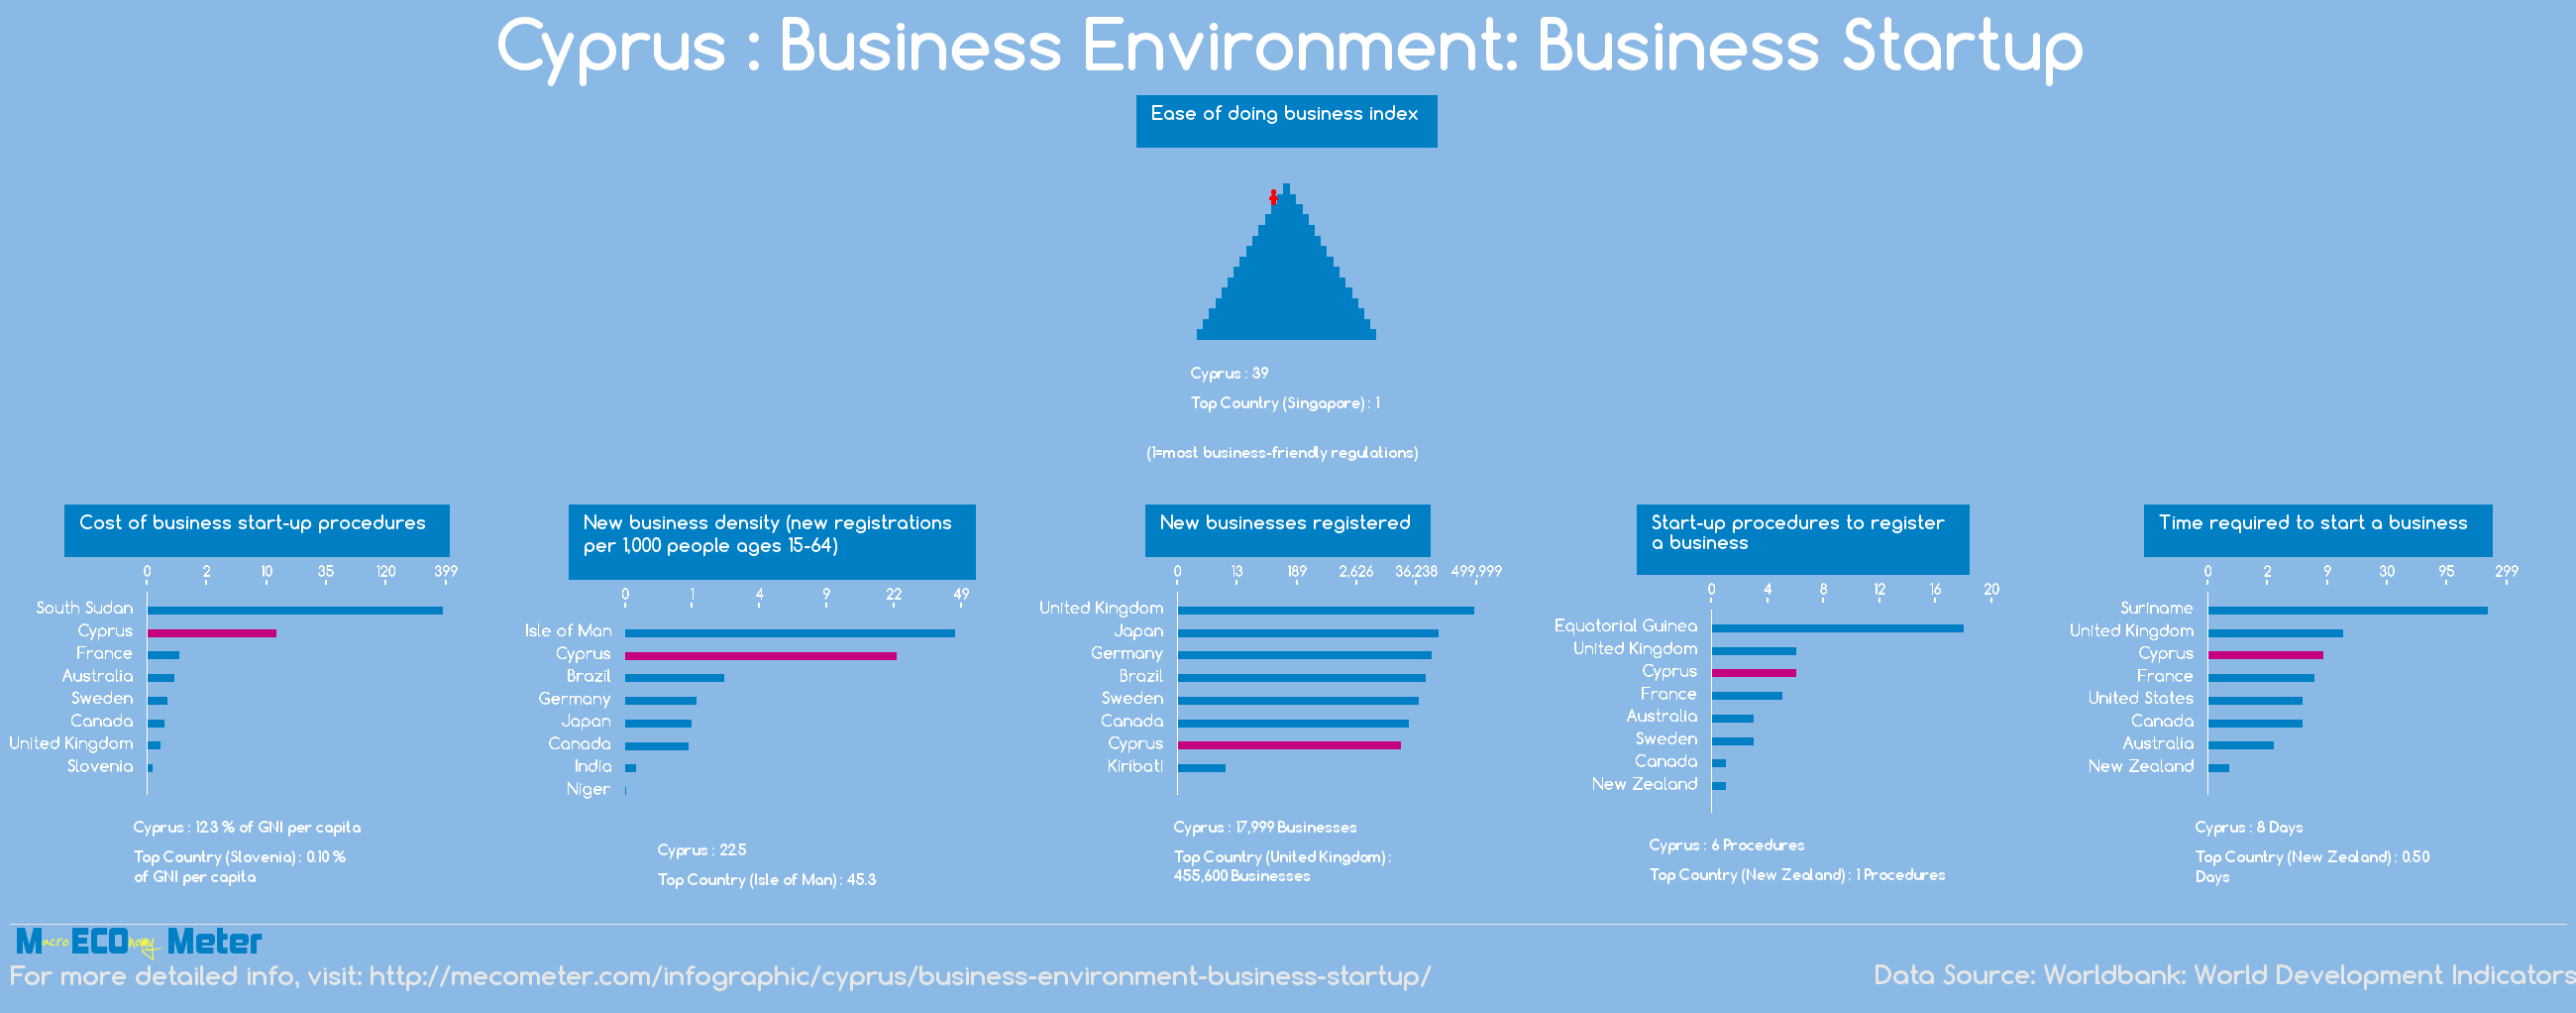 Cyprus : Business Environment: Business Startup